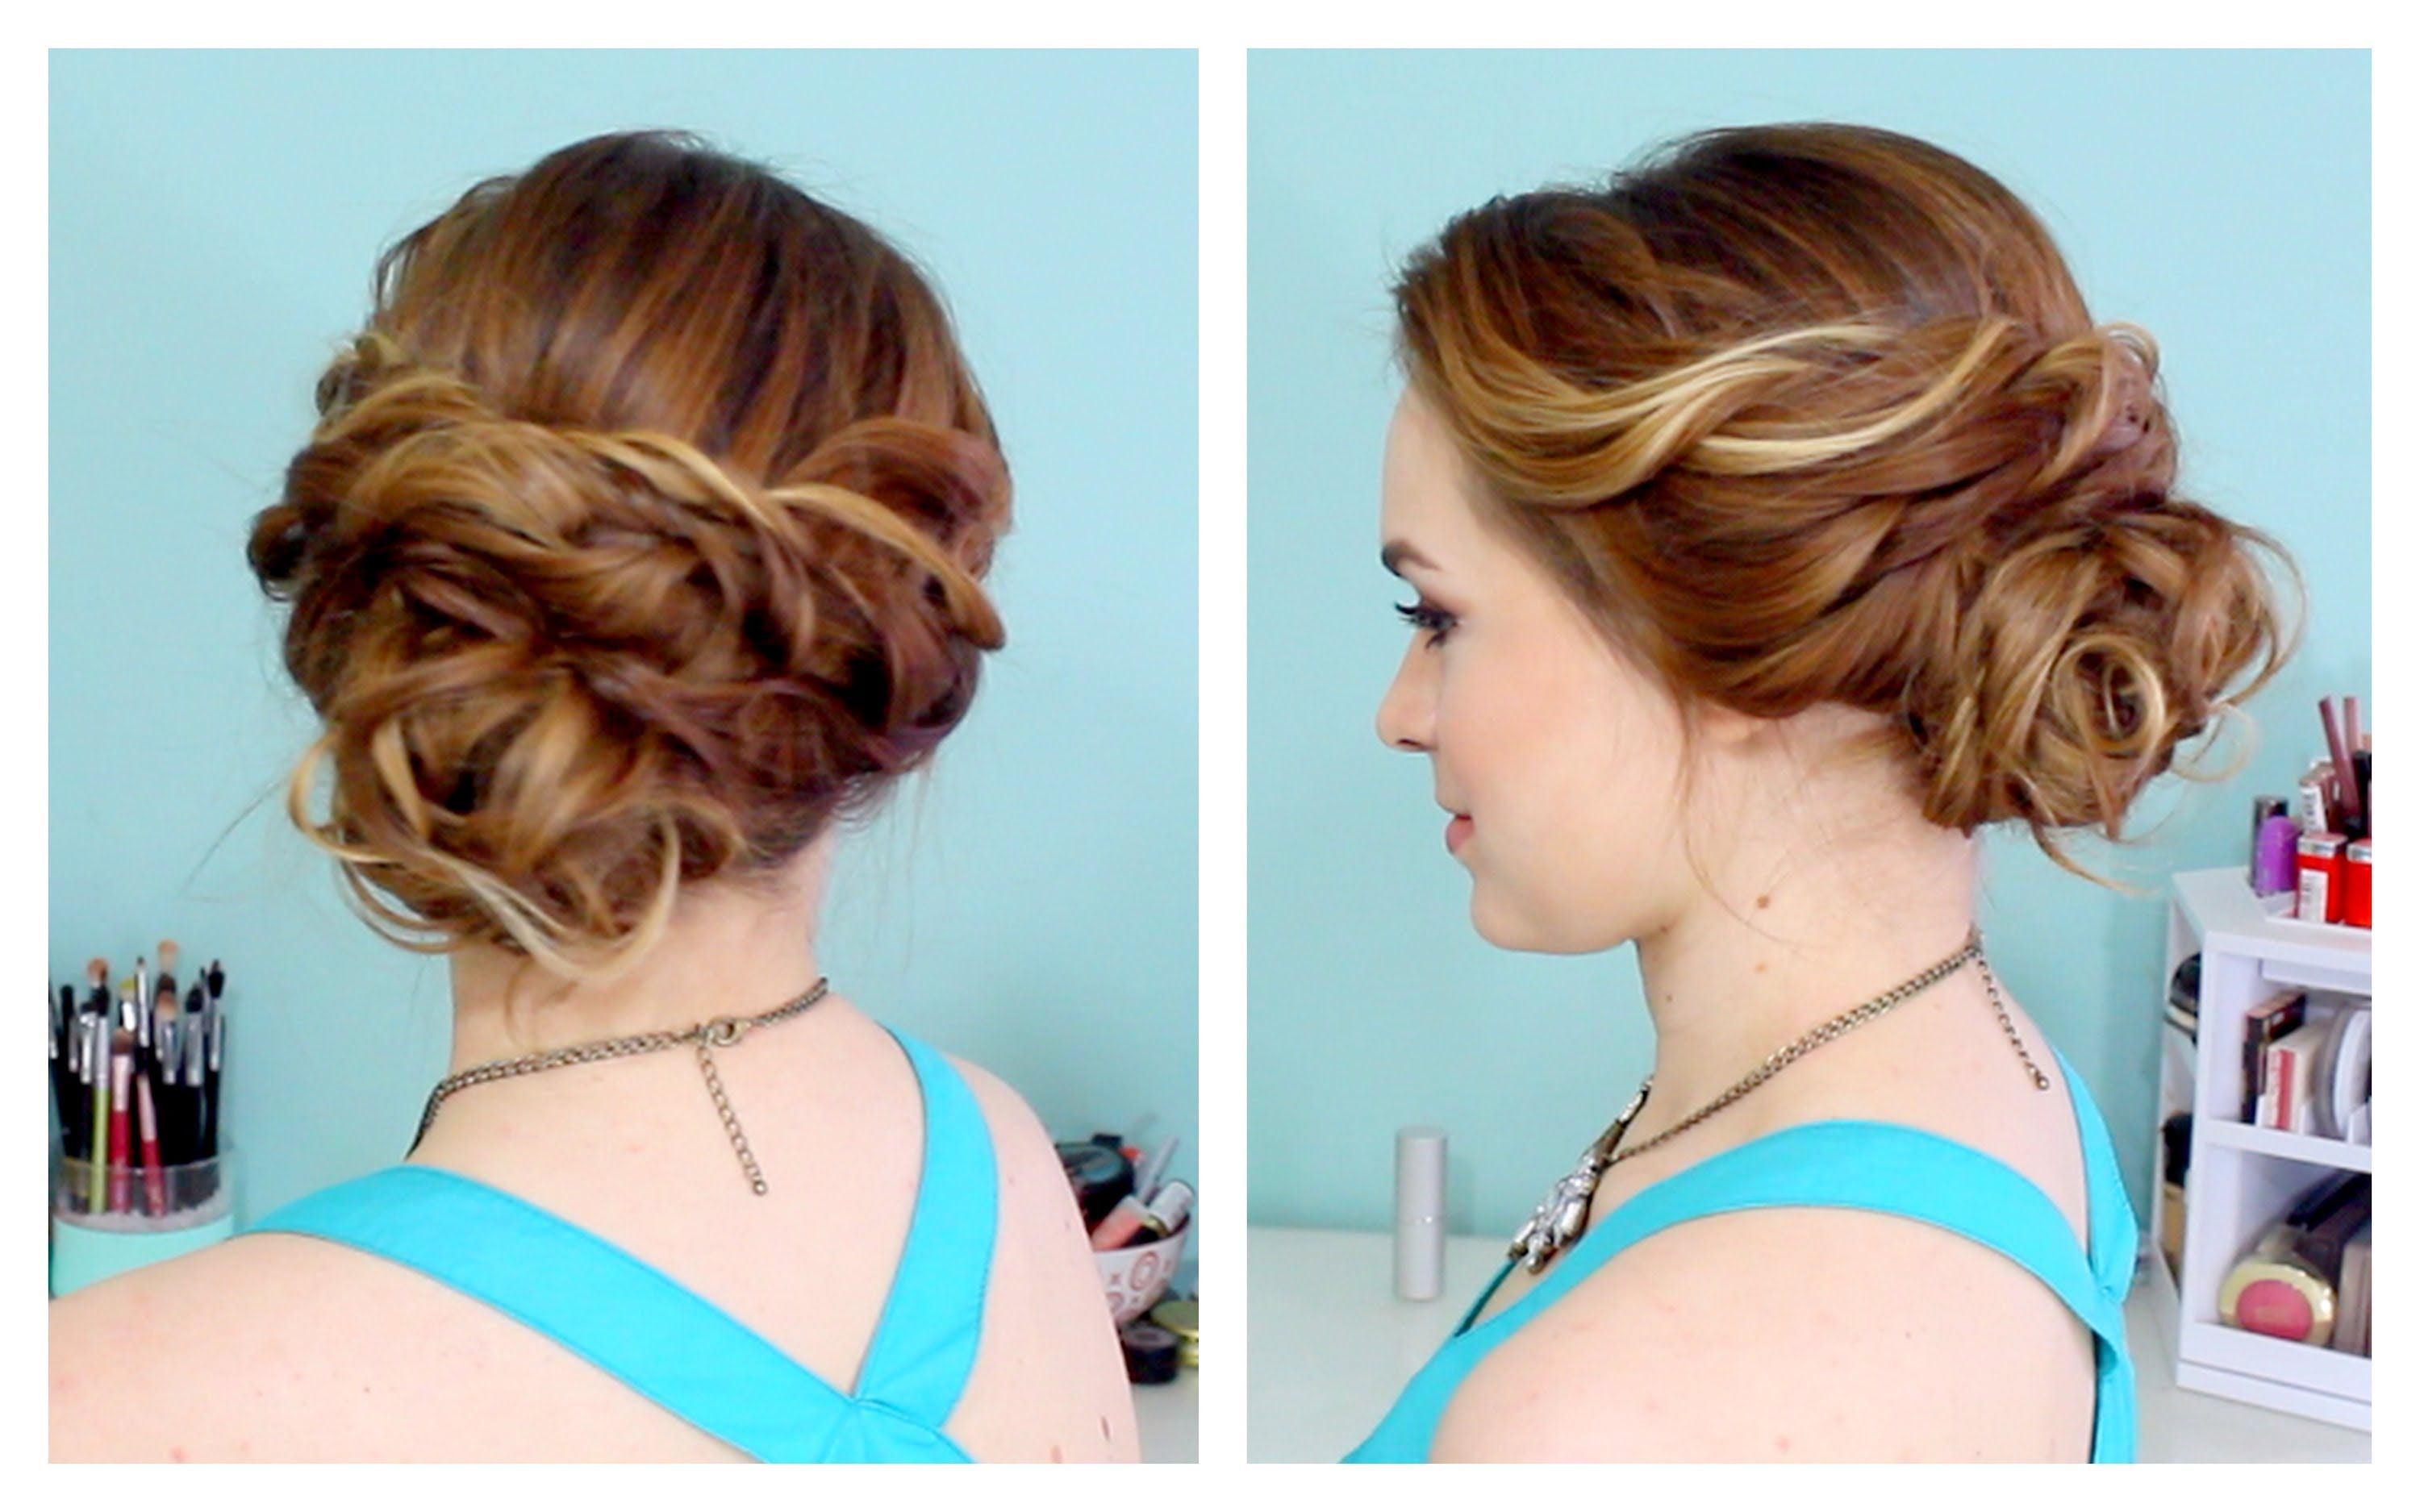 Prom Updo Hairstyles Quick Side Updo For Prom Or Weddings D Playlist  Hairstyles